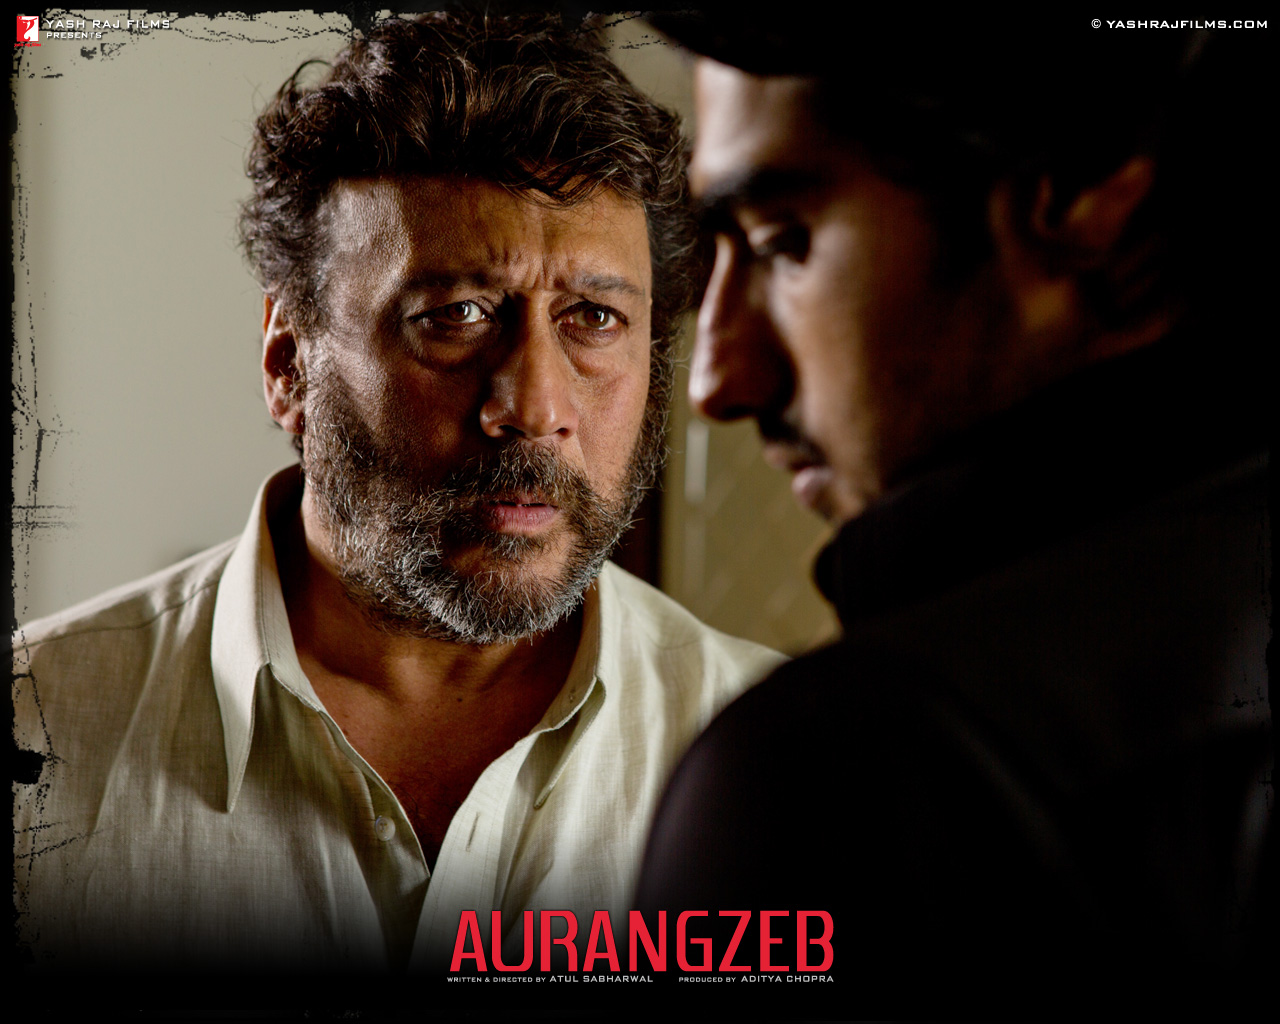 13 Preview: Aurangzeb Synopsis and Stills!